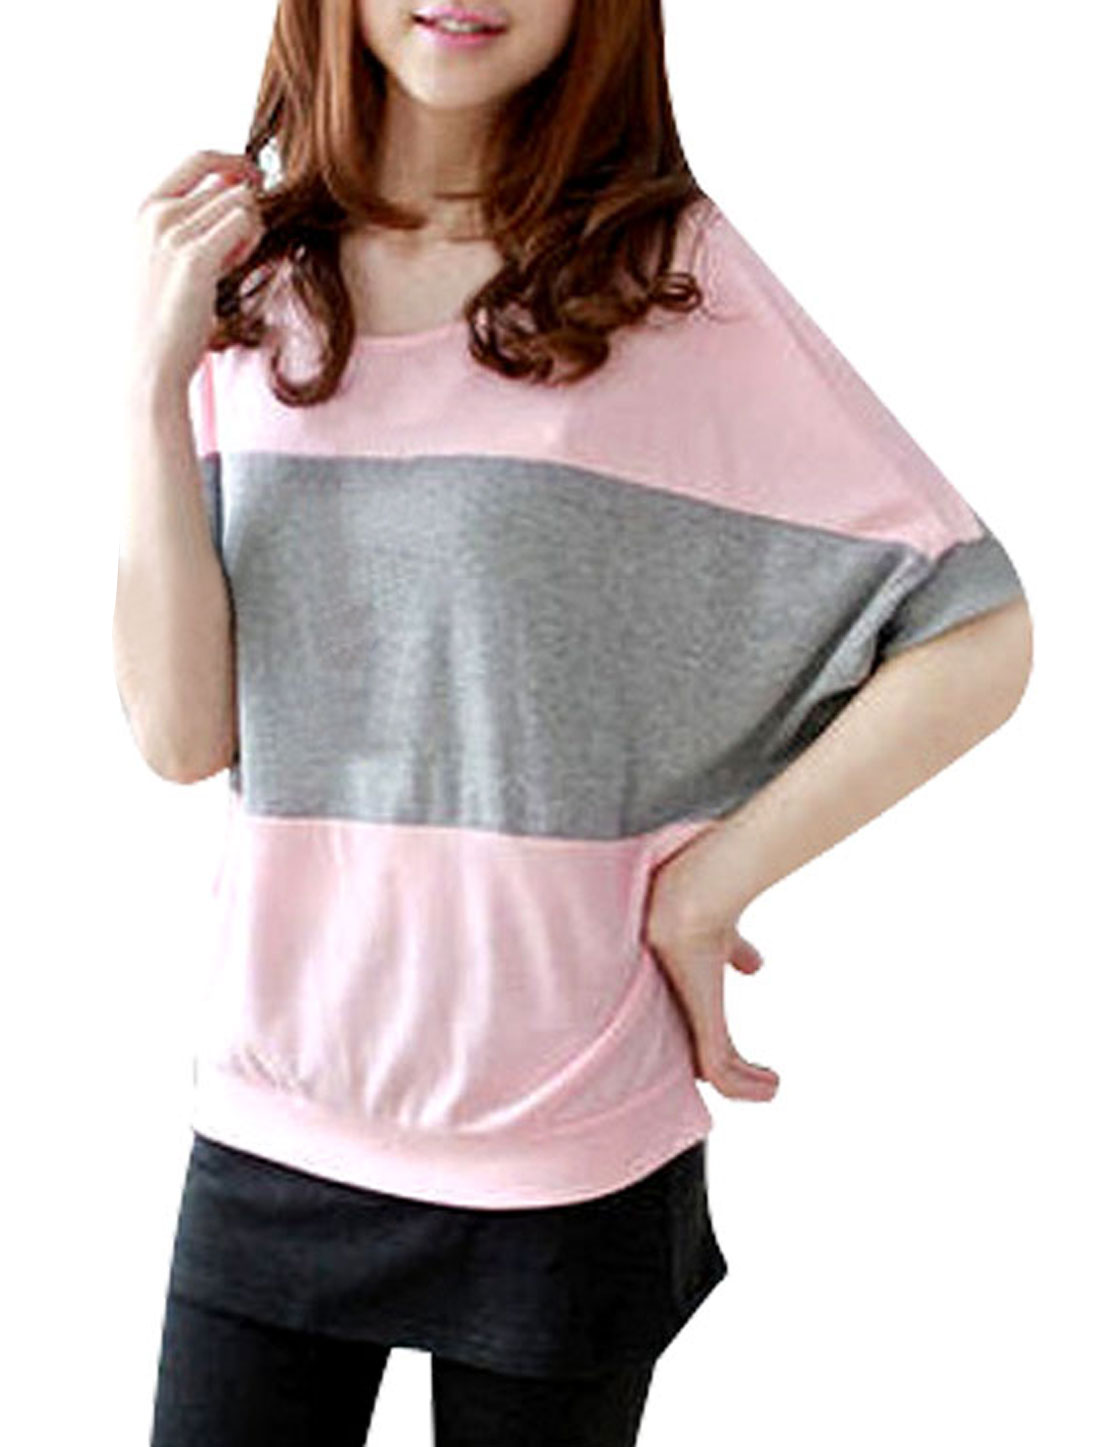 Round Neck Summer Leisure Pink Gray Spliced Top T-Shirt L for Woman